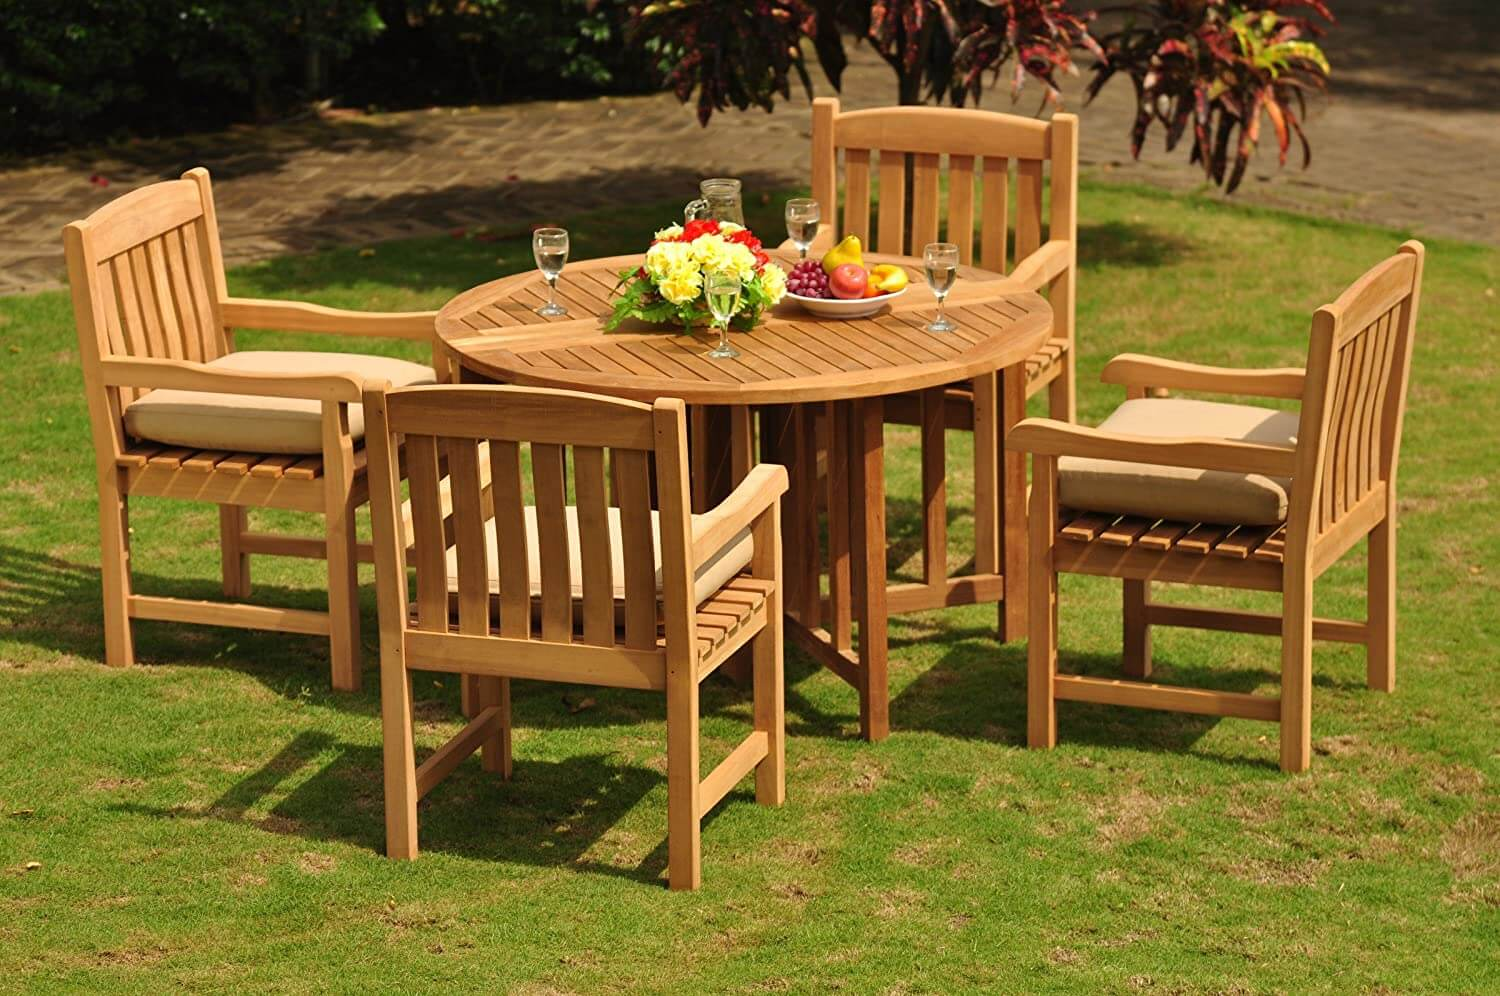 SEMI FORMAL OPTION ROUND PATIO TABLE AND CHAIRS